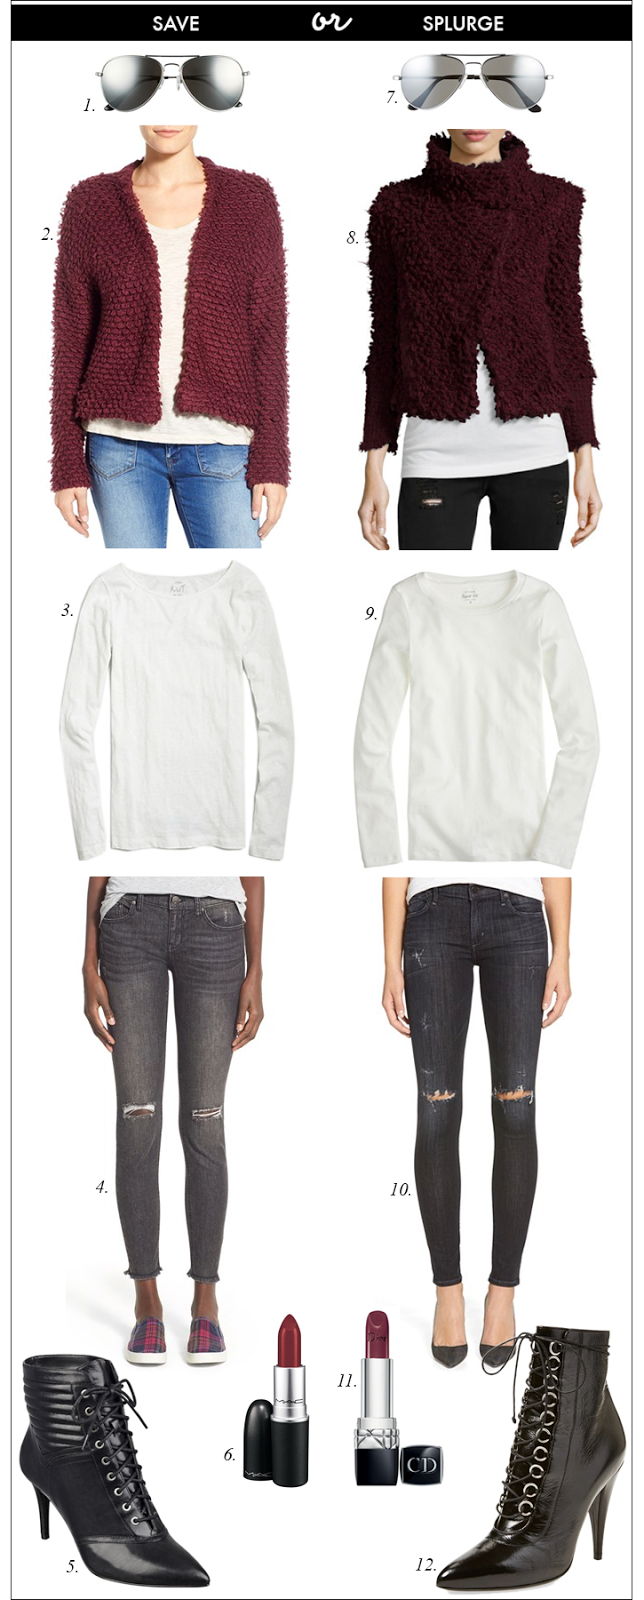 how to style grey jeans, shaggy sweater, lace up booties, distressed jeans, j. crew